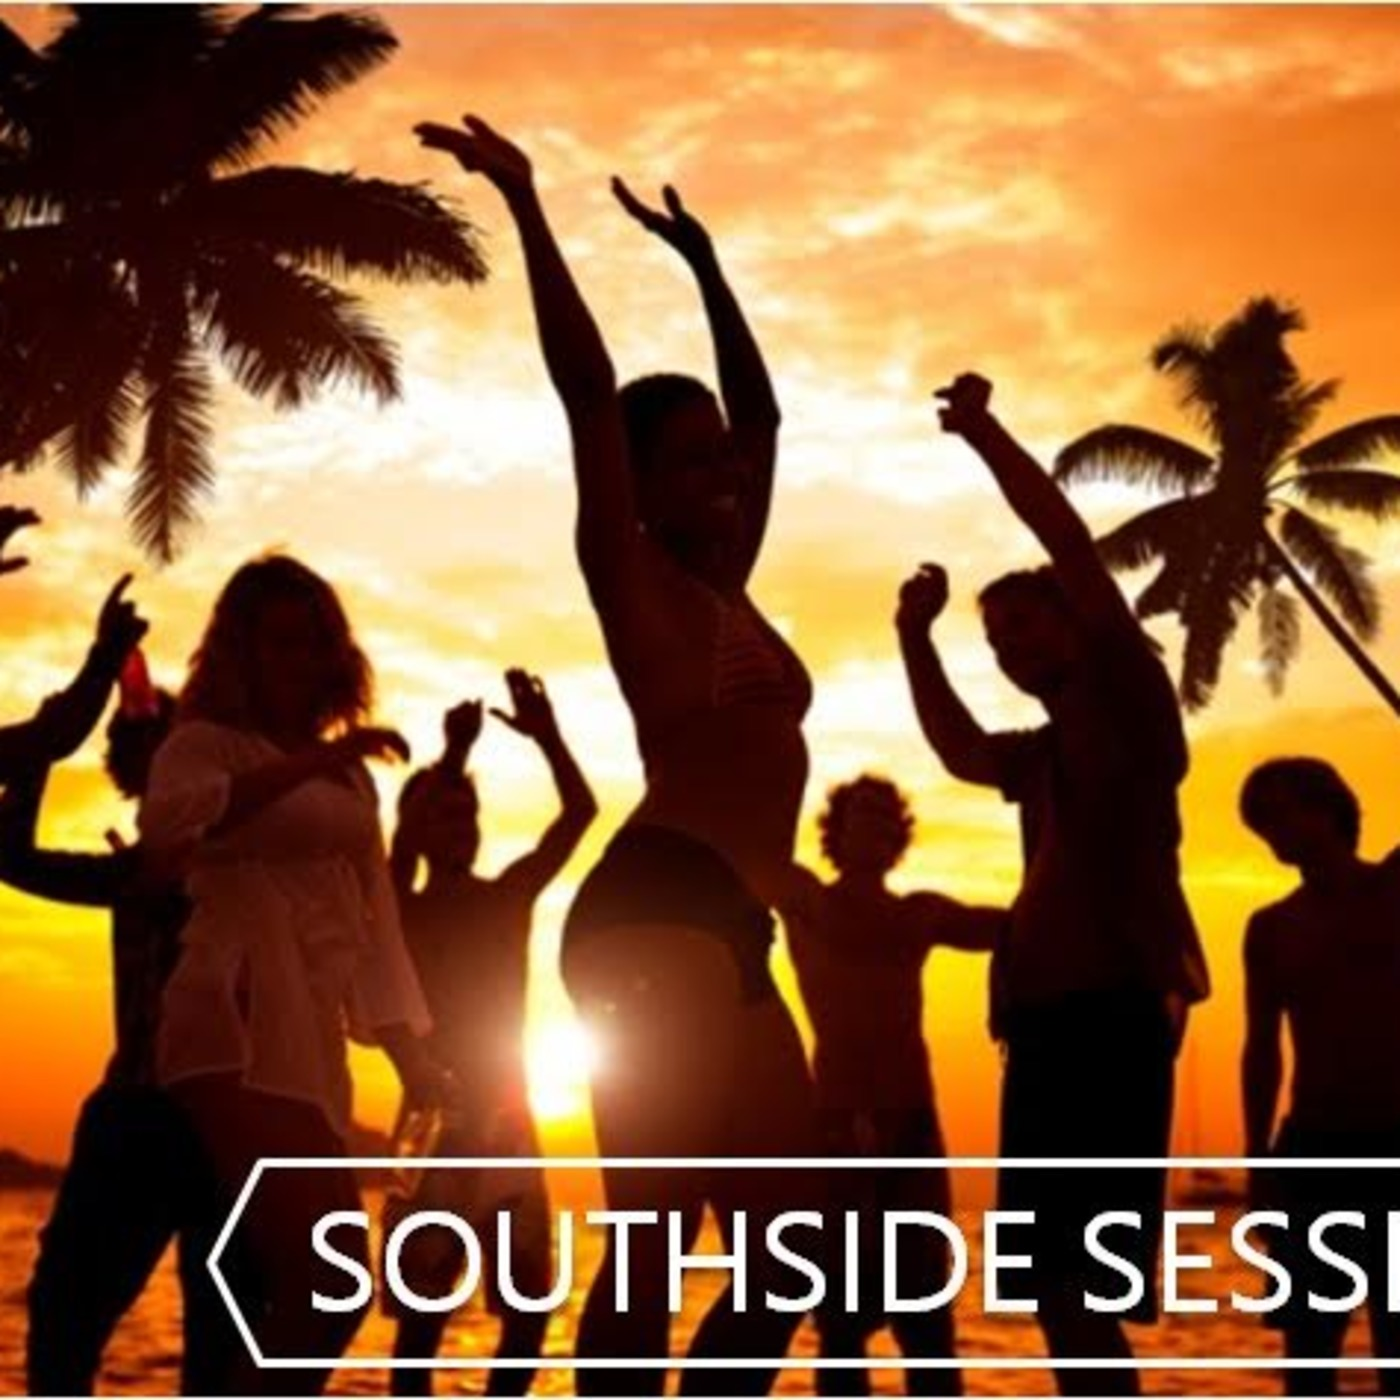 Episode 94 The Southside Sessions 18/07/19 live on pressureradio.com